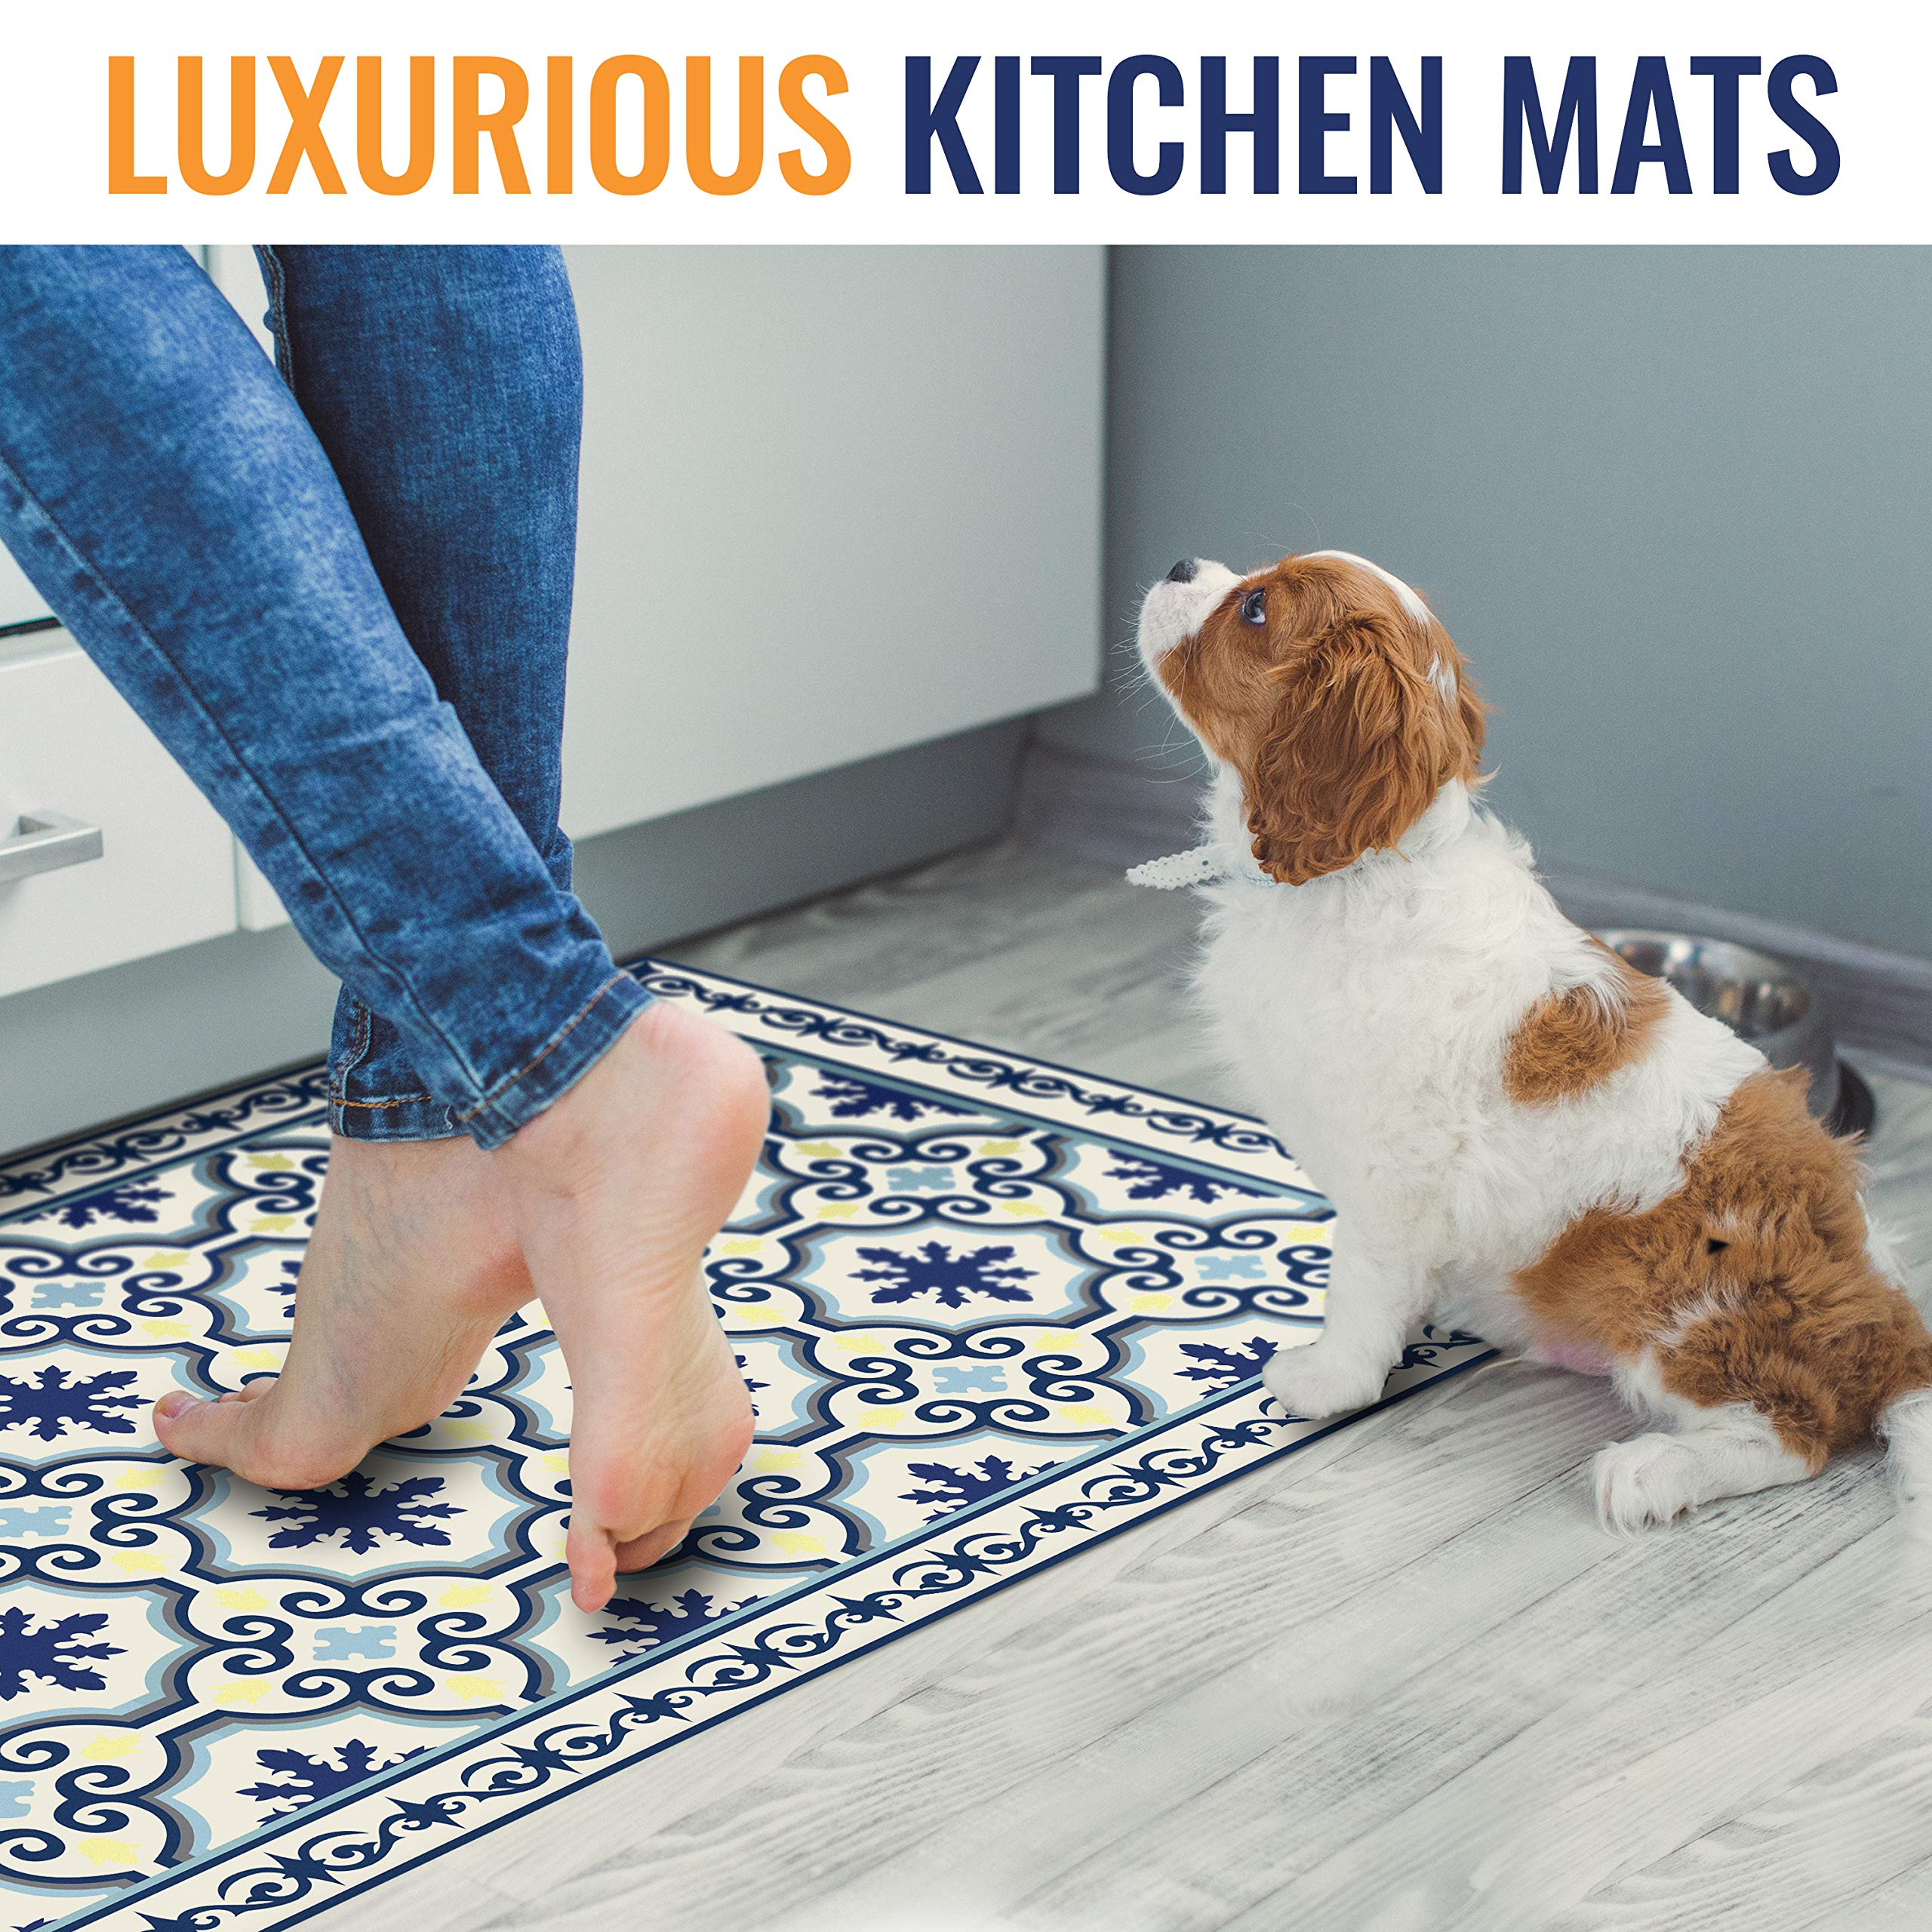 Camoone Non Slip Kitchen Mat + 4 Free Coasters - (Greek Garden) Blue & Off-White Decorative Vinyl Kitchen Floor Mat - Hypoallergenic, Insulated, Non-Fading, Easy to Clean and Non-Toxic''47.2x23.6x0.08'' by Camoone (Image #4)